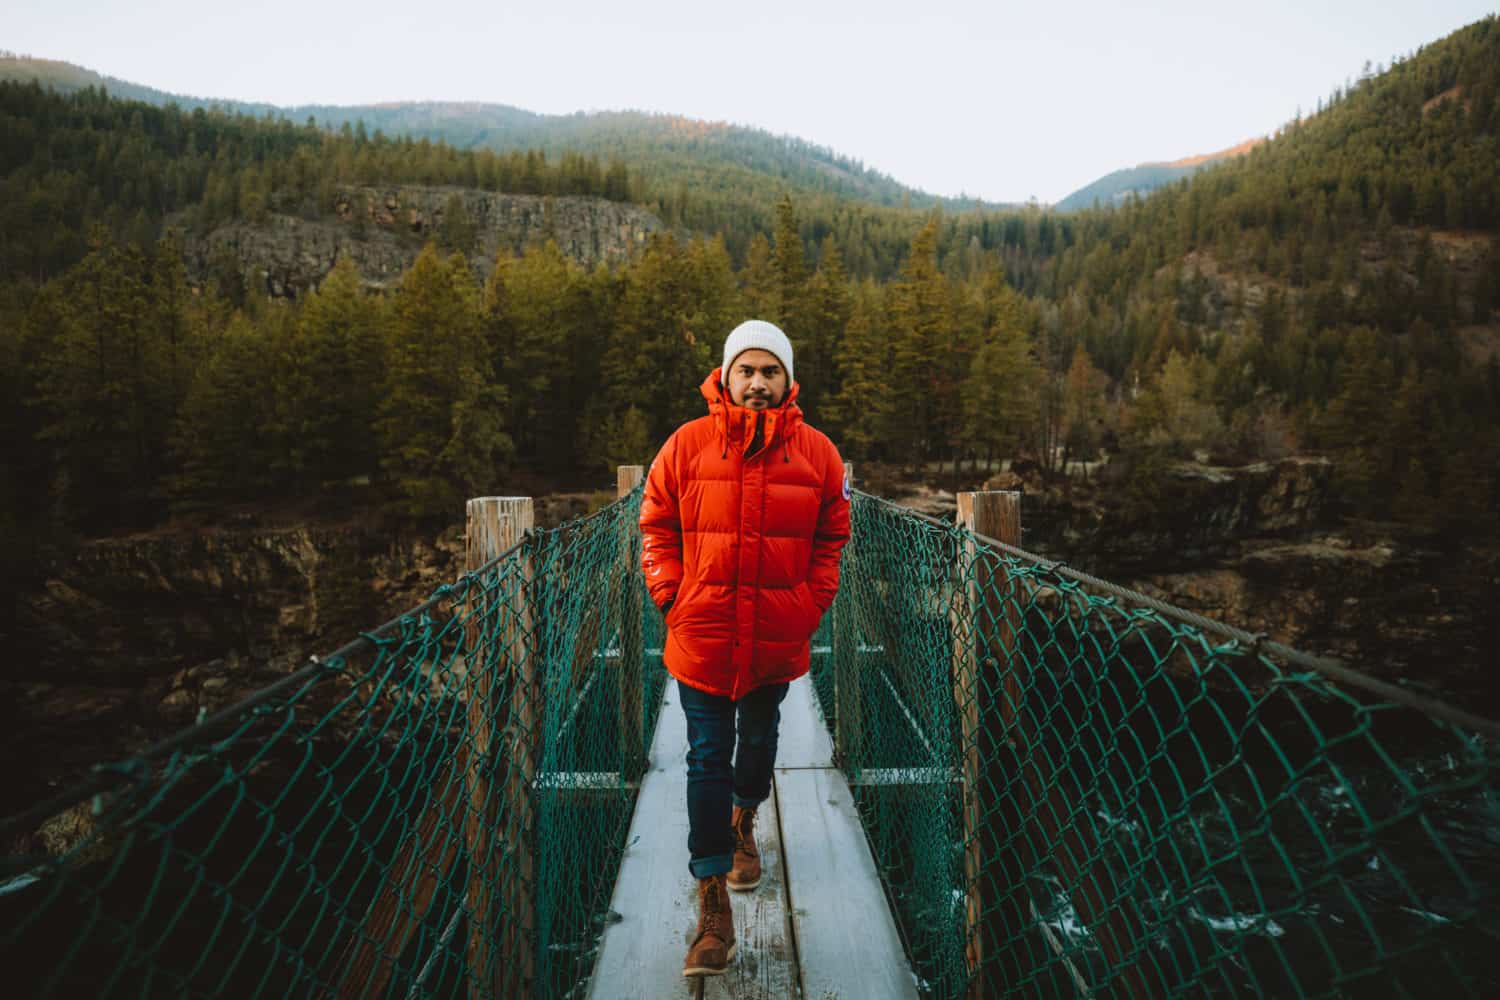 Berty Mandagie walking on Kootenai Falls Swinging Bridge - TheMandagies.com